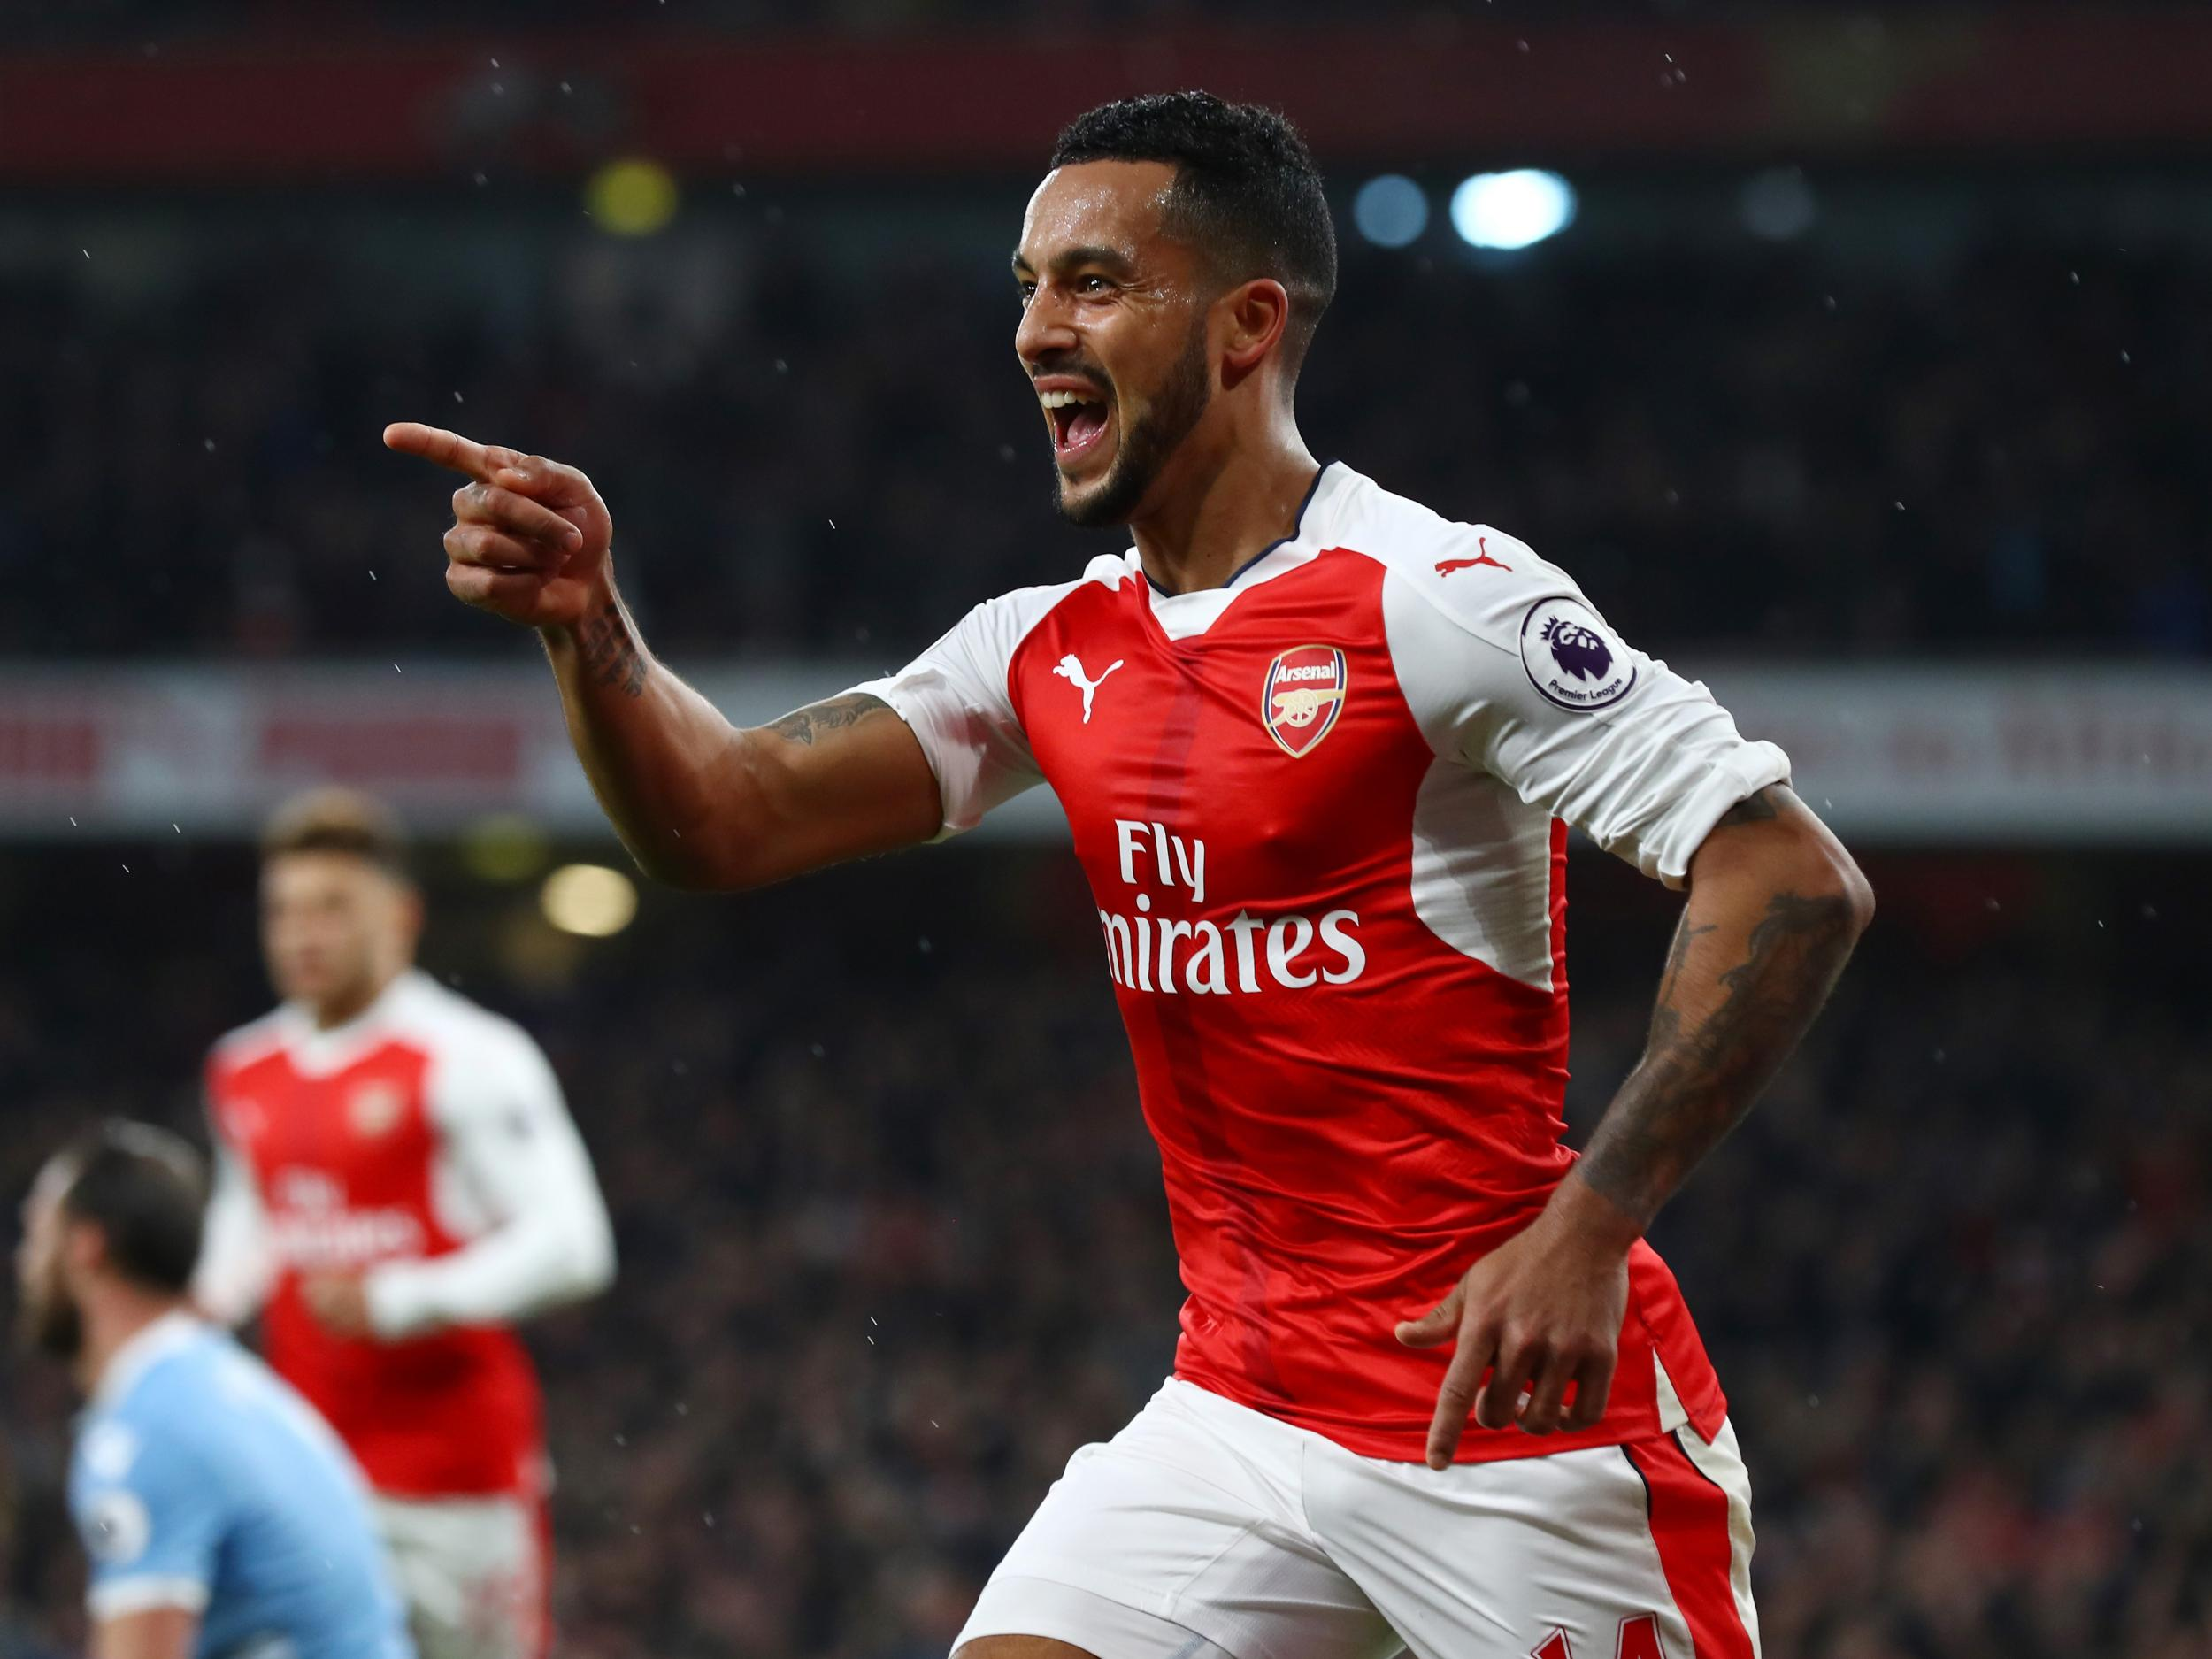 Barcelona urged to sign Theo Walcott from Arsenal after revelations about Jean Seri in Spain